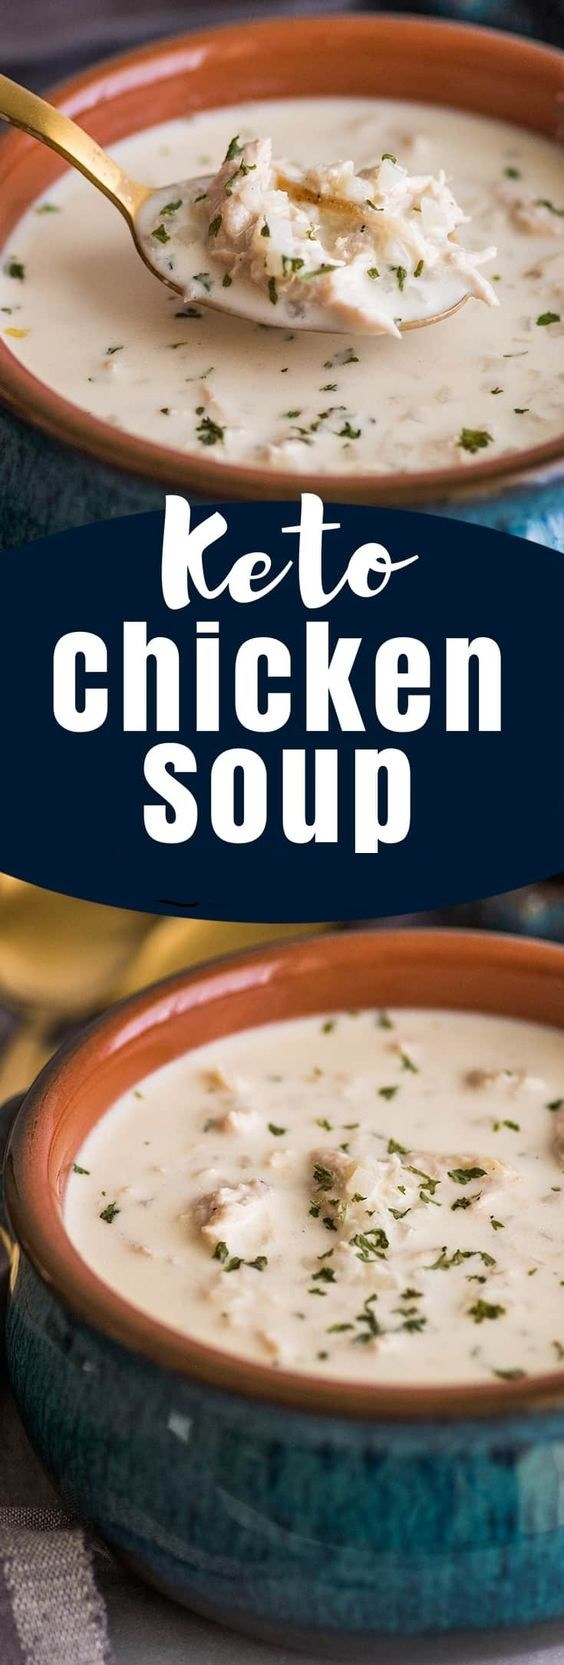 #keto #ketoforbeginners #ketomealplan #ketorecipes #ketodiet #ketodinner #ketofoodlist #ketosoup #ketochicken #ketolunch #easyketorecipes #ketodinnerrecipes #ketorecipesforbeginners #ketogenicdiet #ketogenicrecipes #ketogenicmealplan